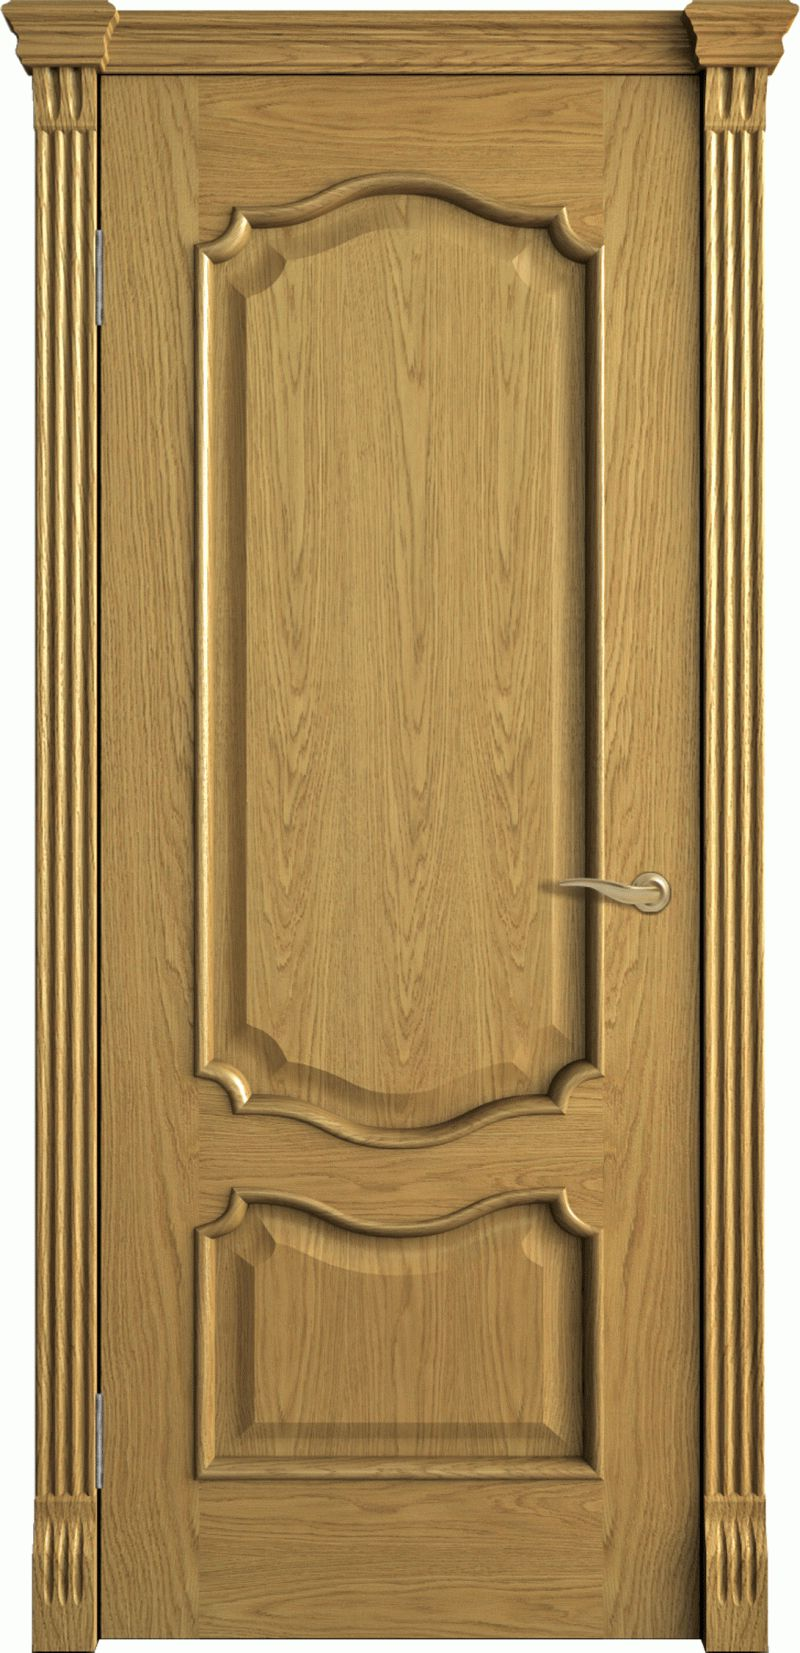 Doors made of natural wood